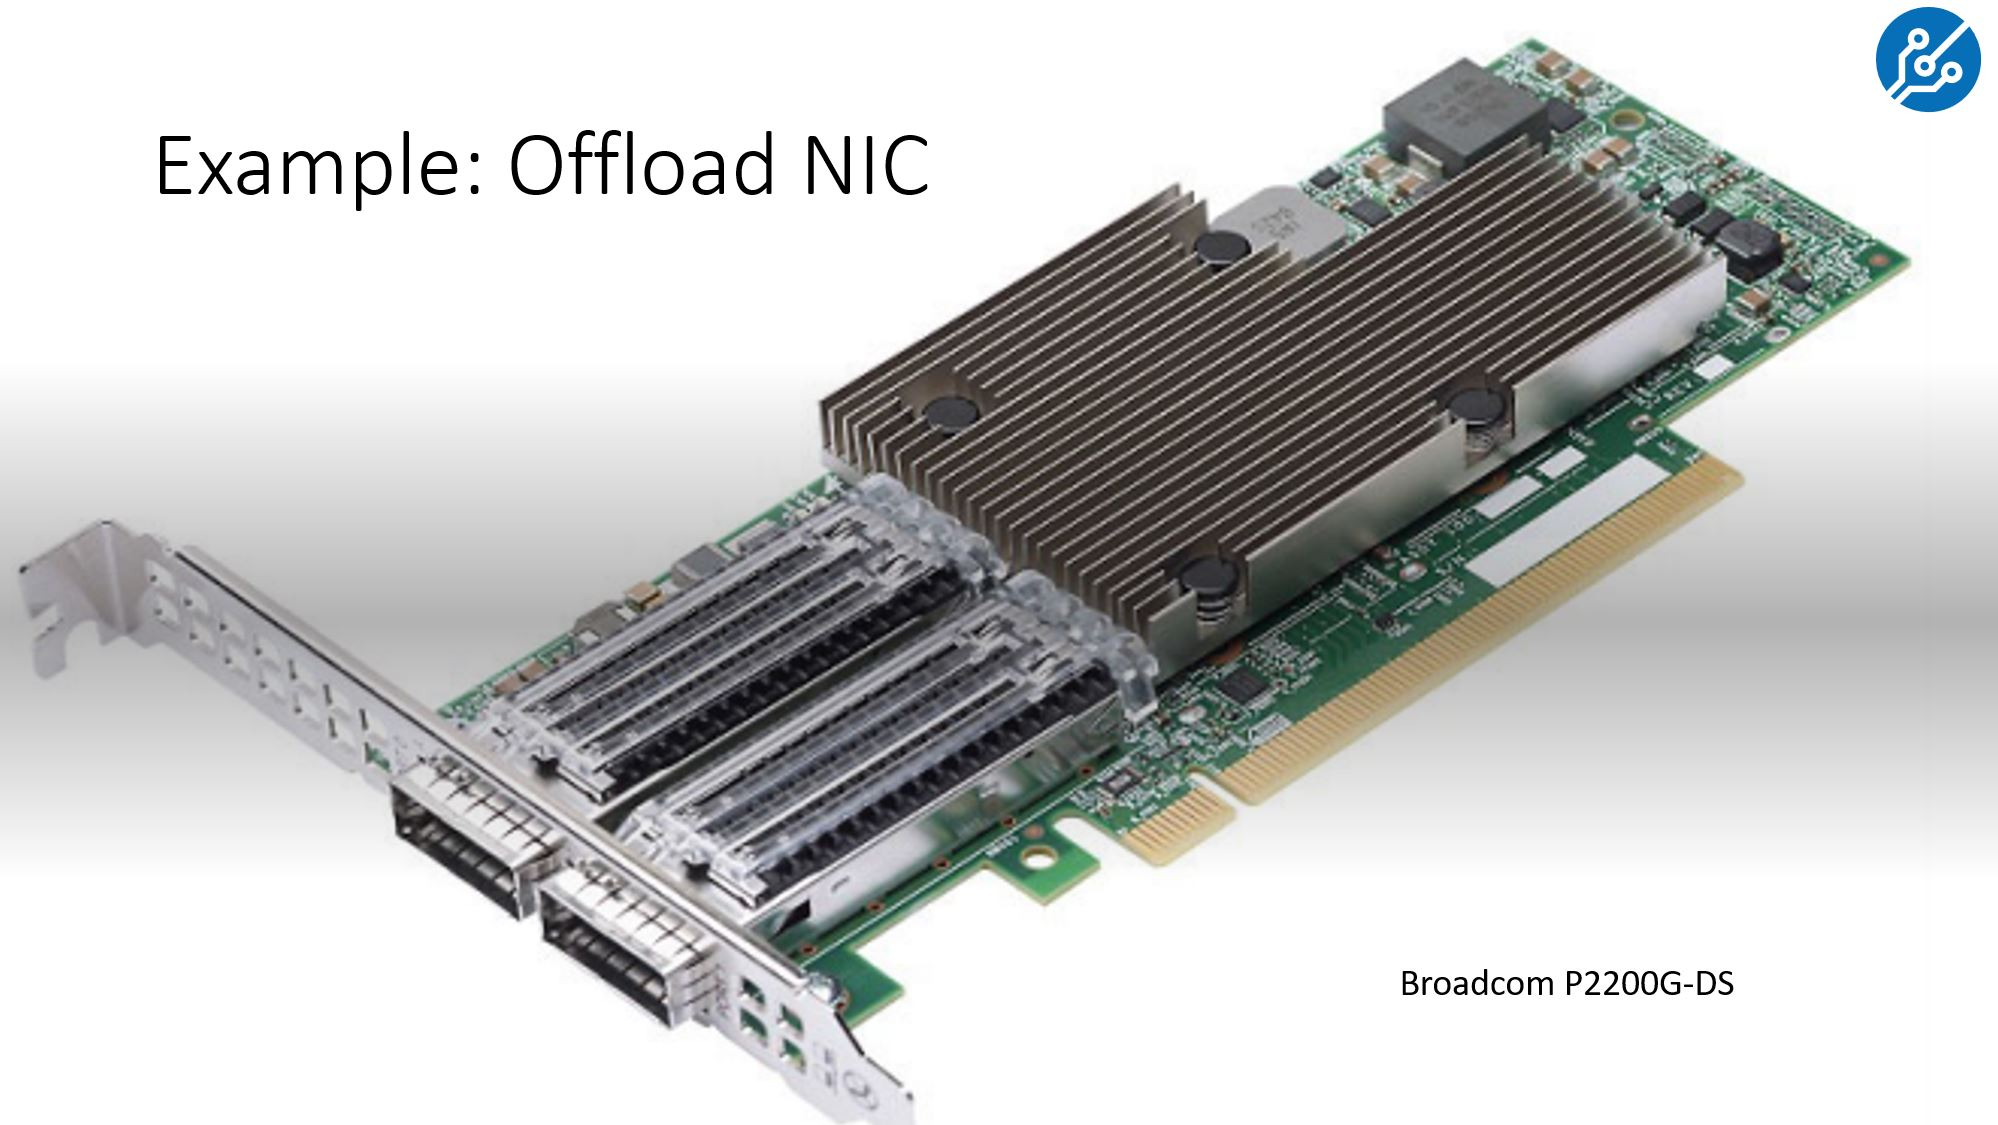 Offload NIC Example Q2 2021